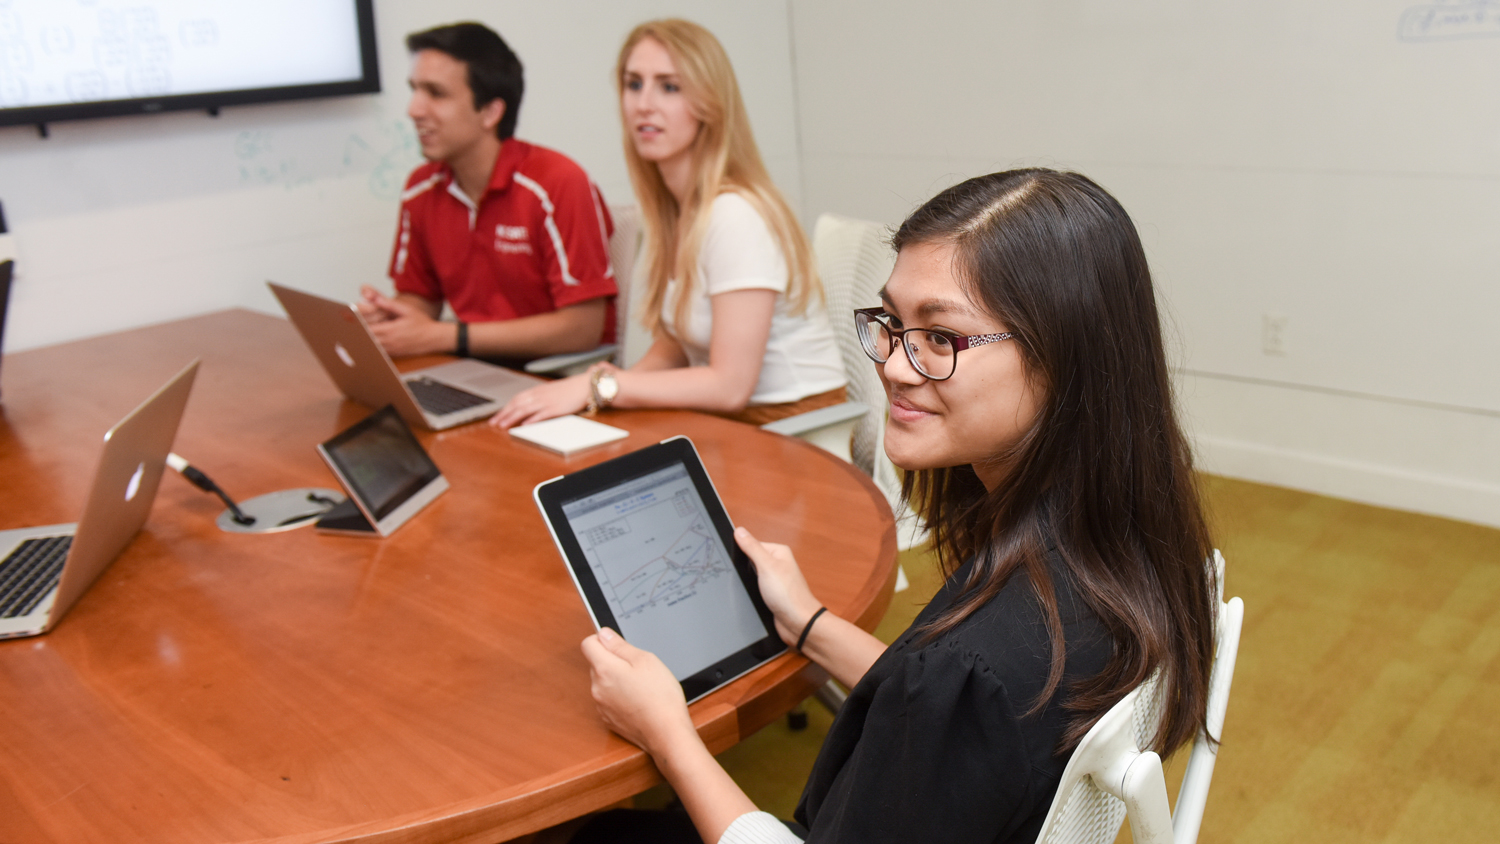 students on Ipad - Academics - College of Natural Resources at NC State University